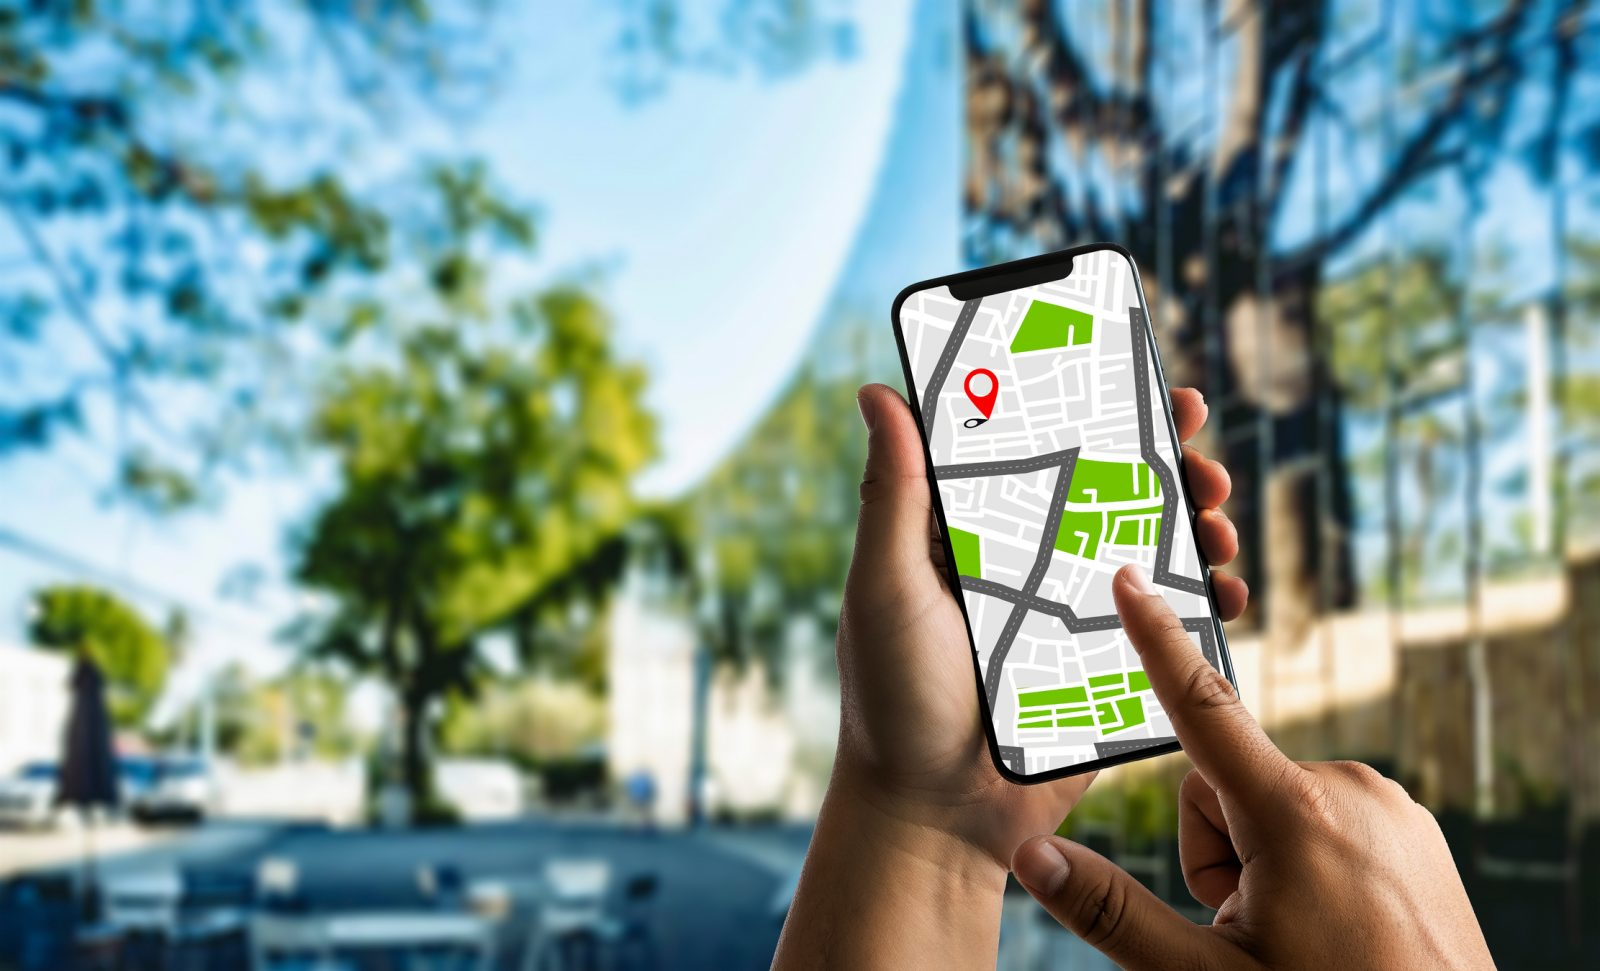 Targeting Home Buyers Through Geofencing